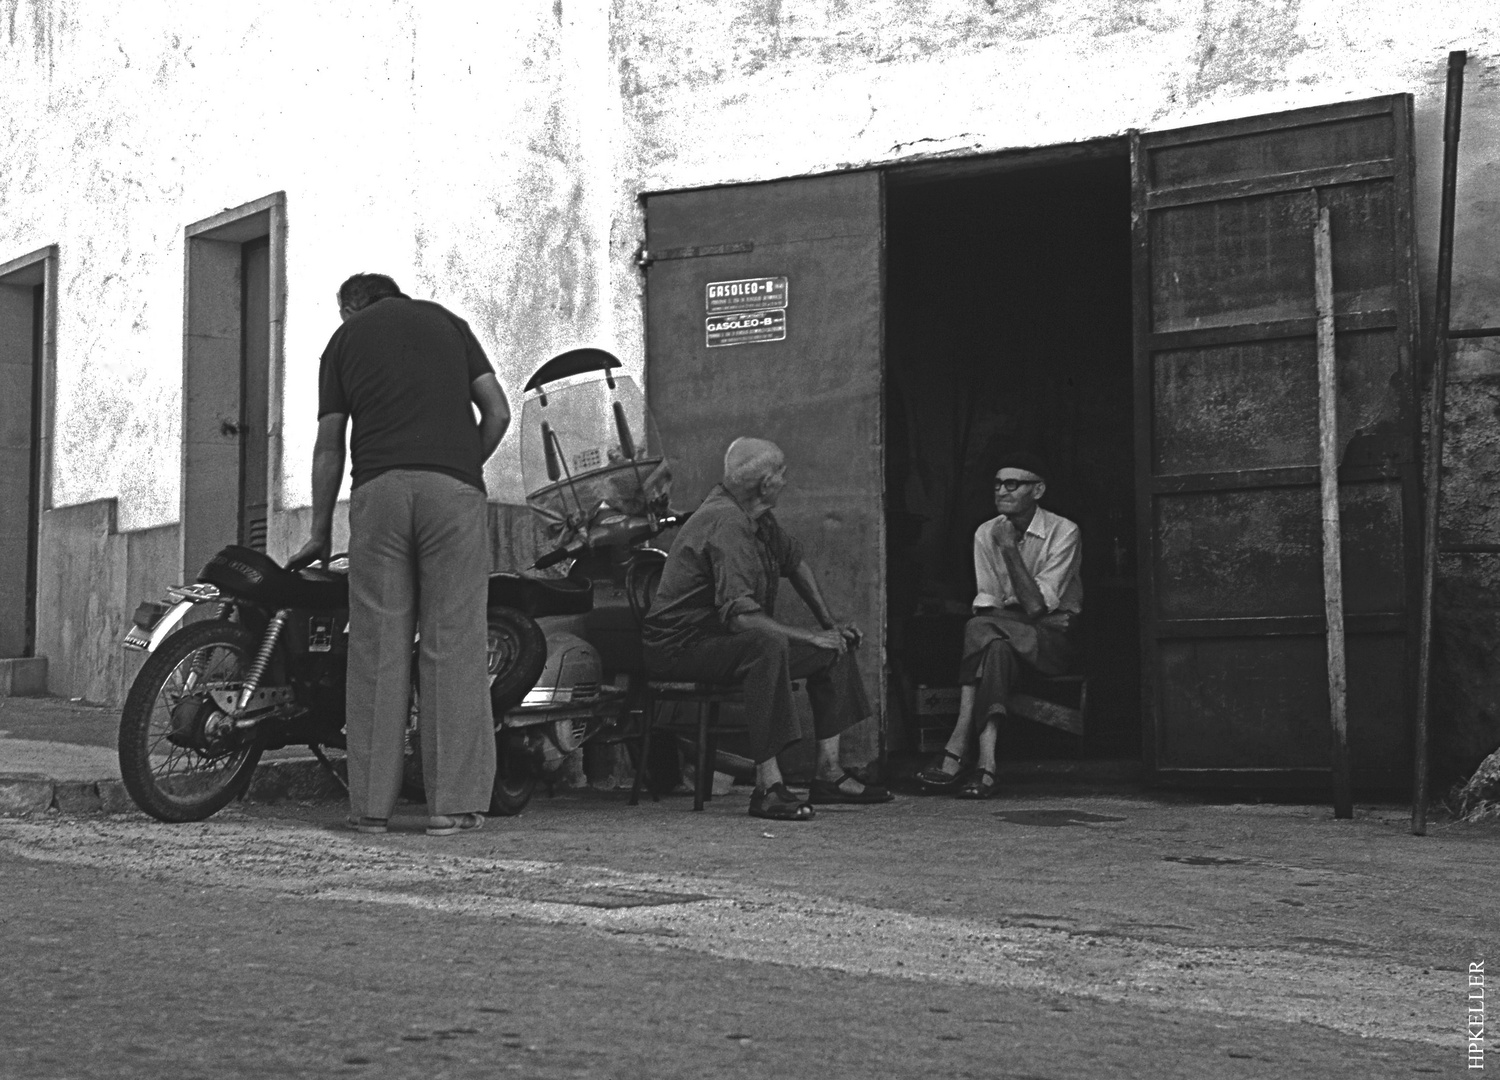 Many years ago in Cala Figuera, Mallorca, ...technical discussion among bikers - Analog from 1983